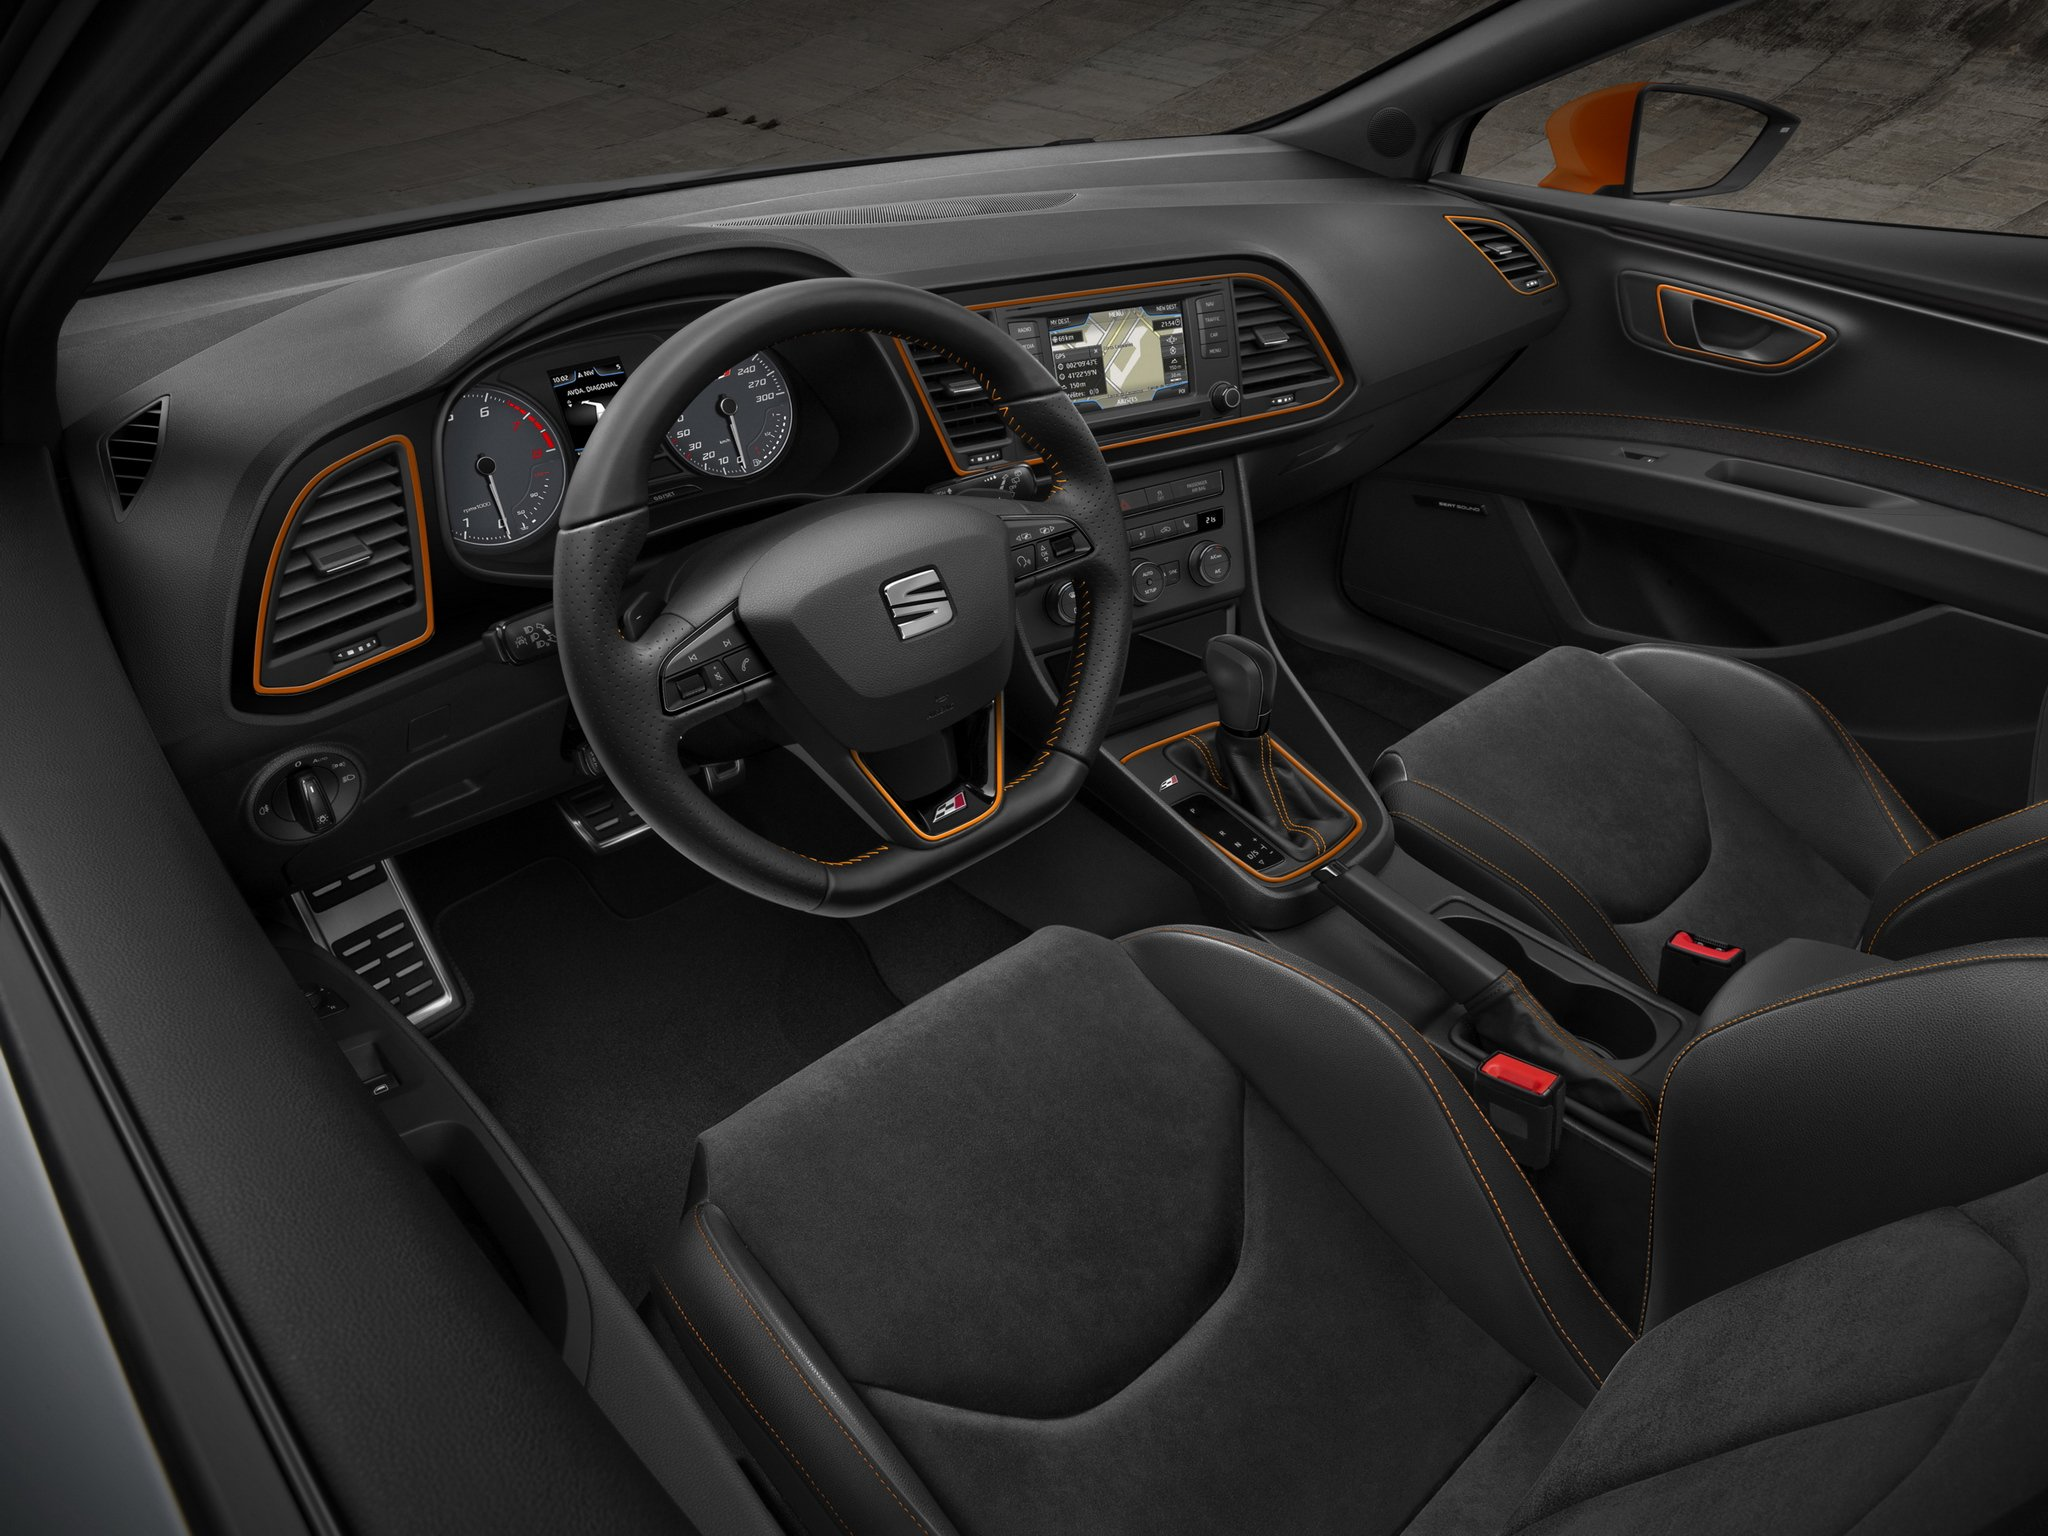 2014 seat leon s c cupra 280 interior h wallpaper. Black Bedroom Furniture Sets. Home Design Ideas